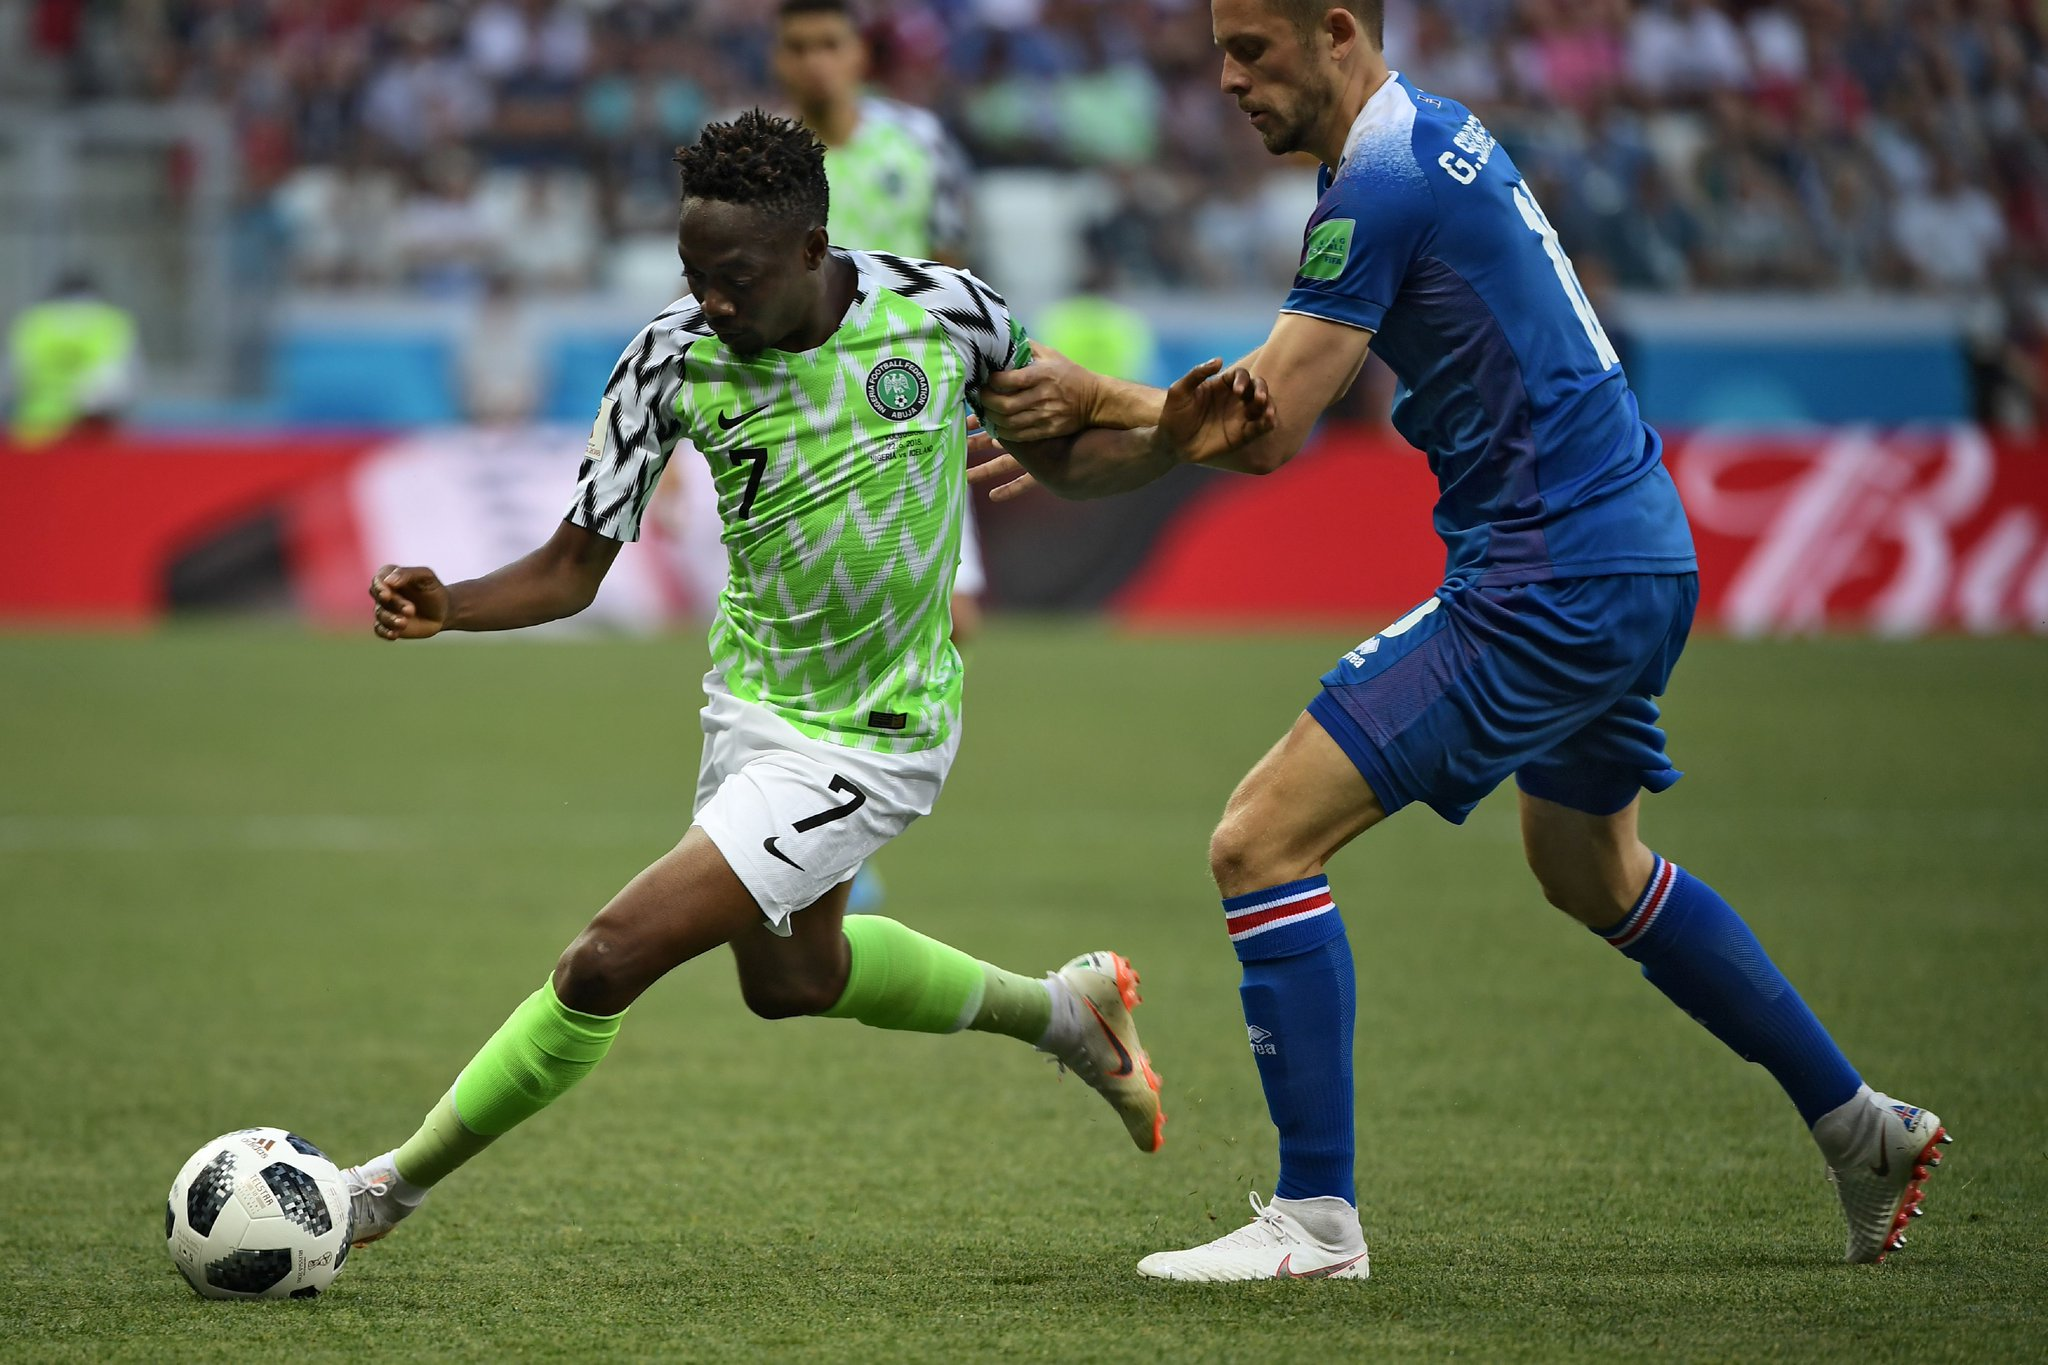 Siasia: Musa's Pace, Energy Made Difference For Super Eagles